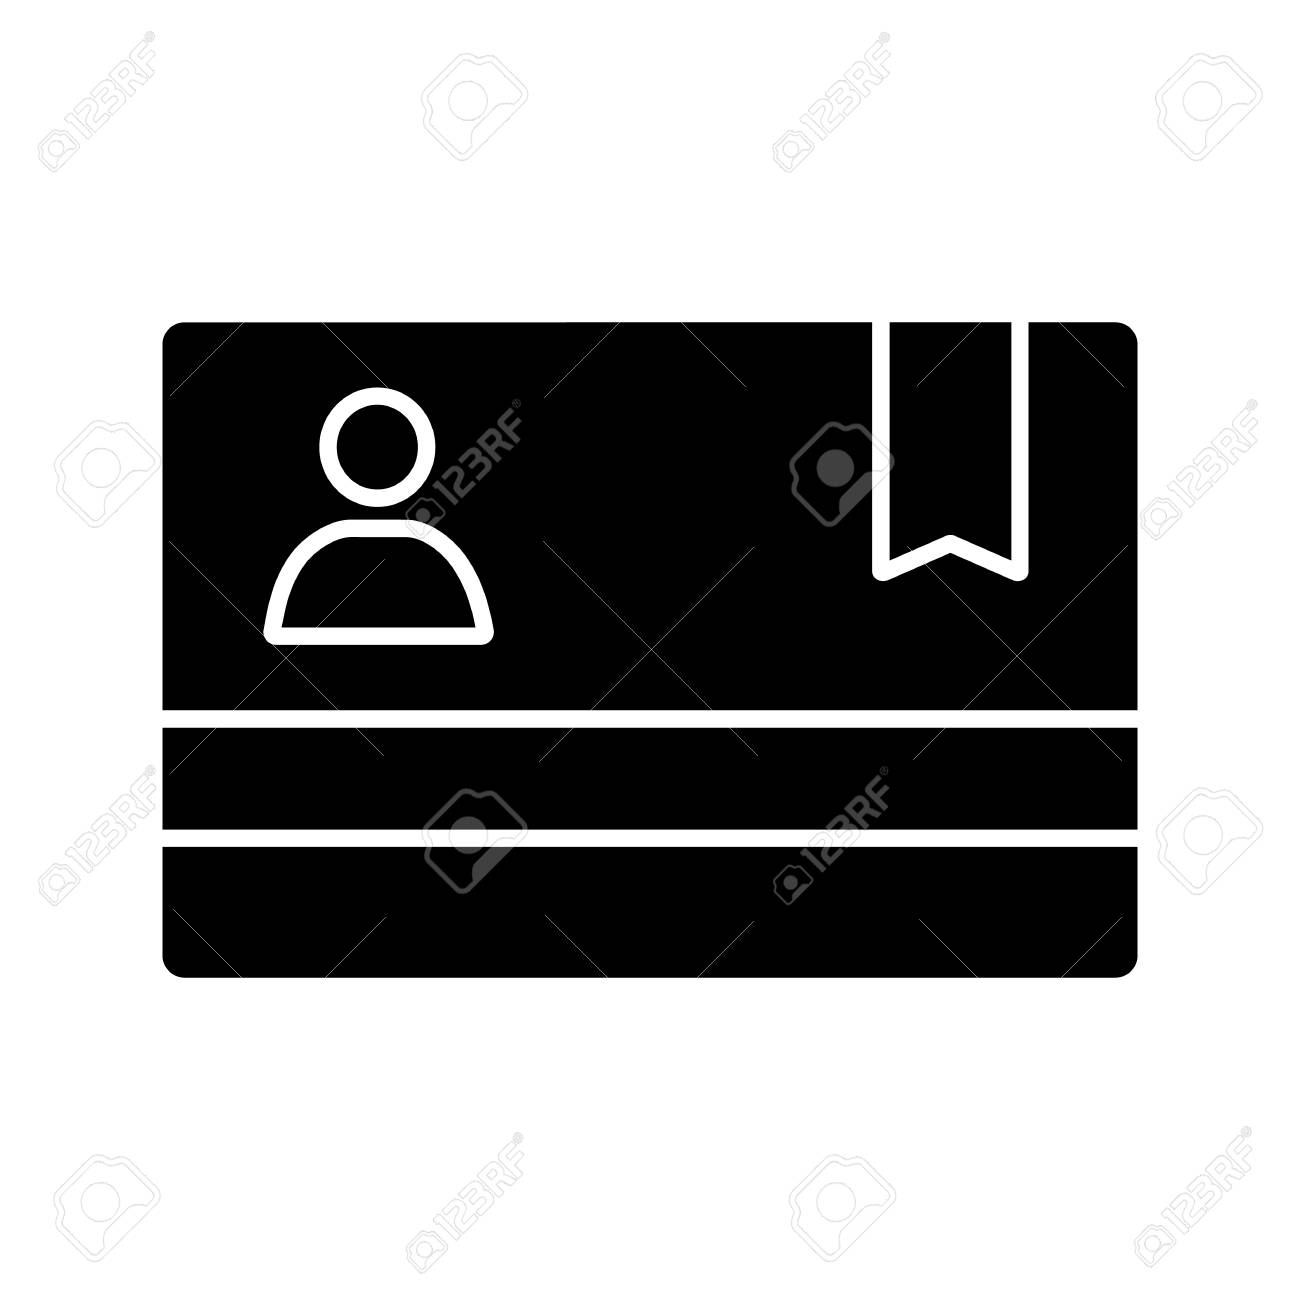 Membership card glyph icon. Business card. ID badge. Silhouette symbol. Negative space. Vector isolated illustration - 106706074